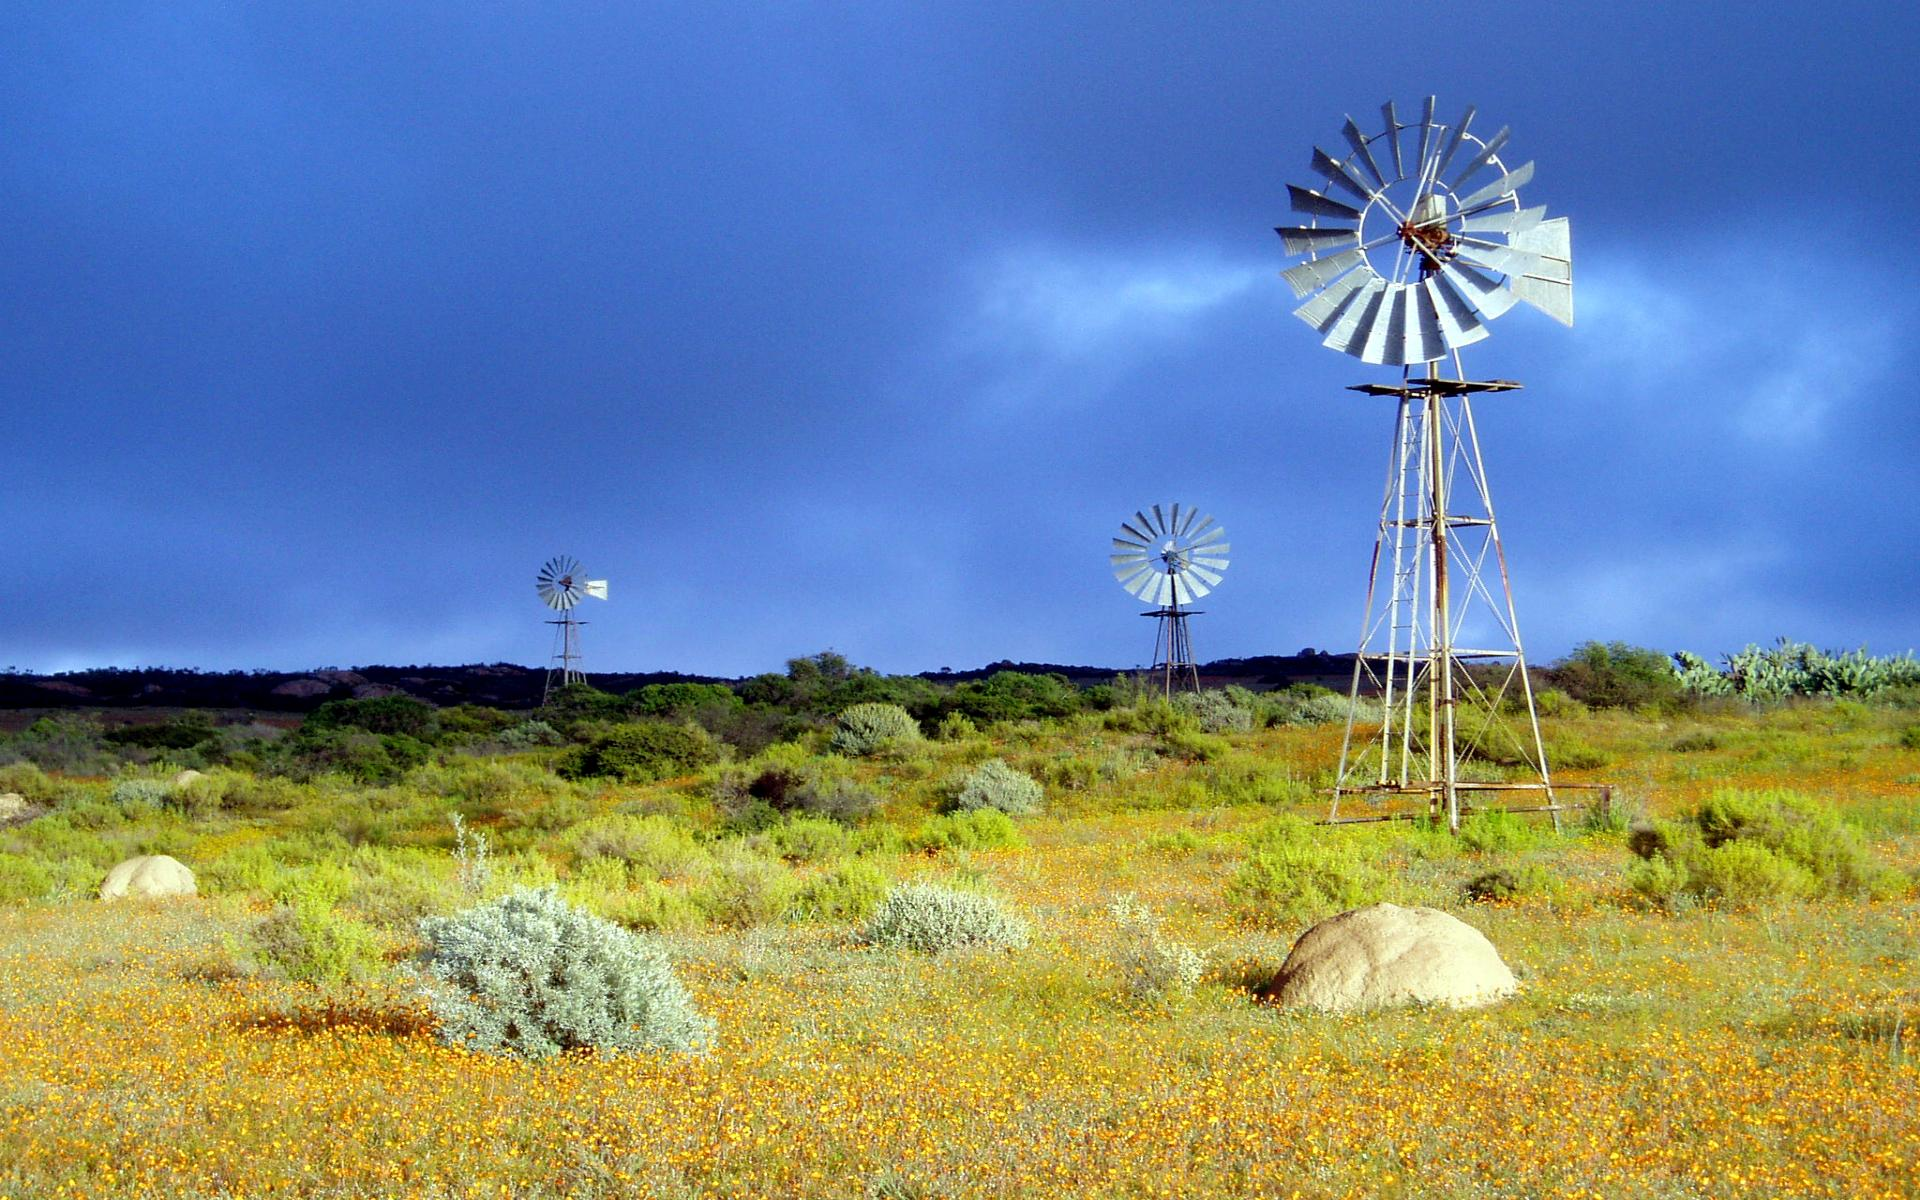 Windmill Wallpapers Top Quality Cool Windmill Backgrounds